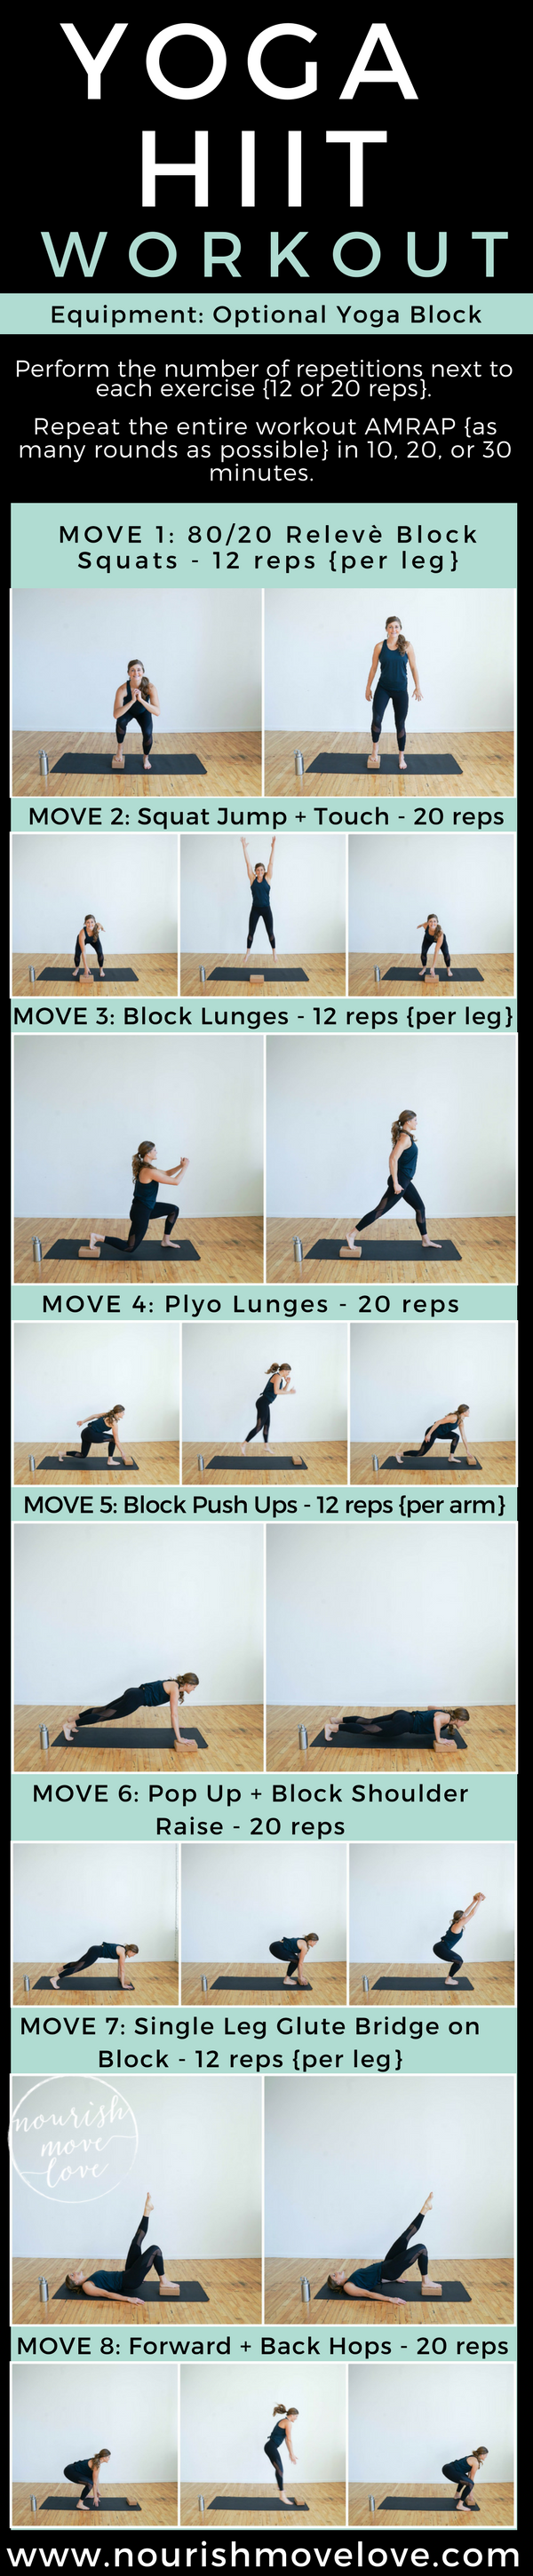 Home Workout: a Yoga-meets-HIIT: 15 minutes total body